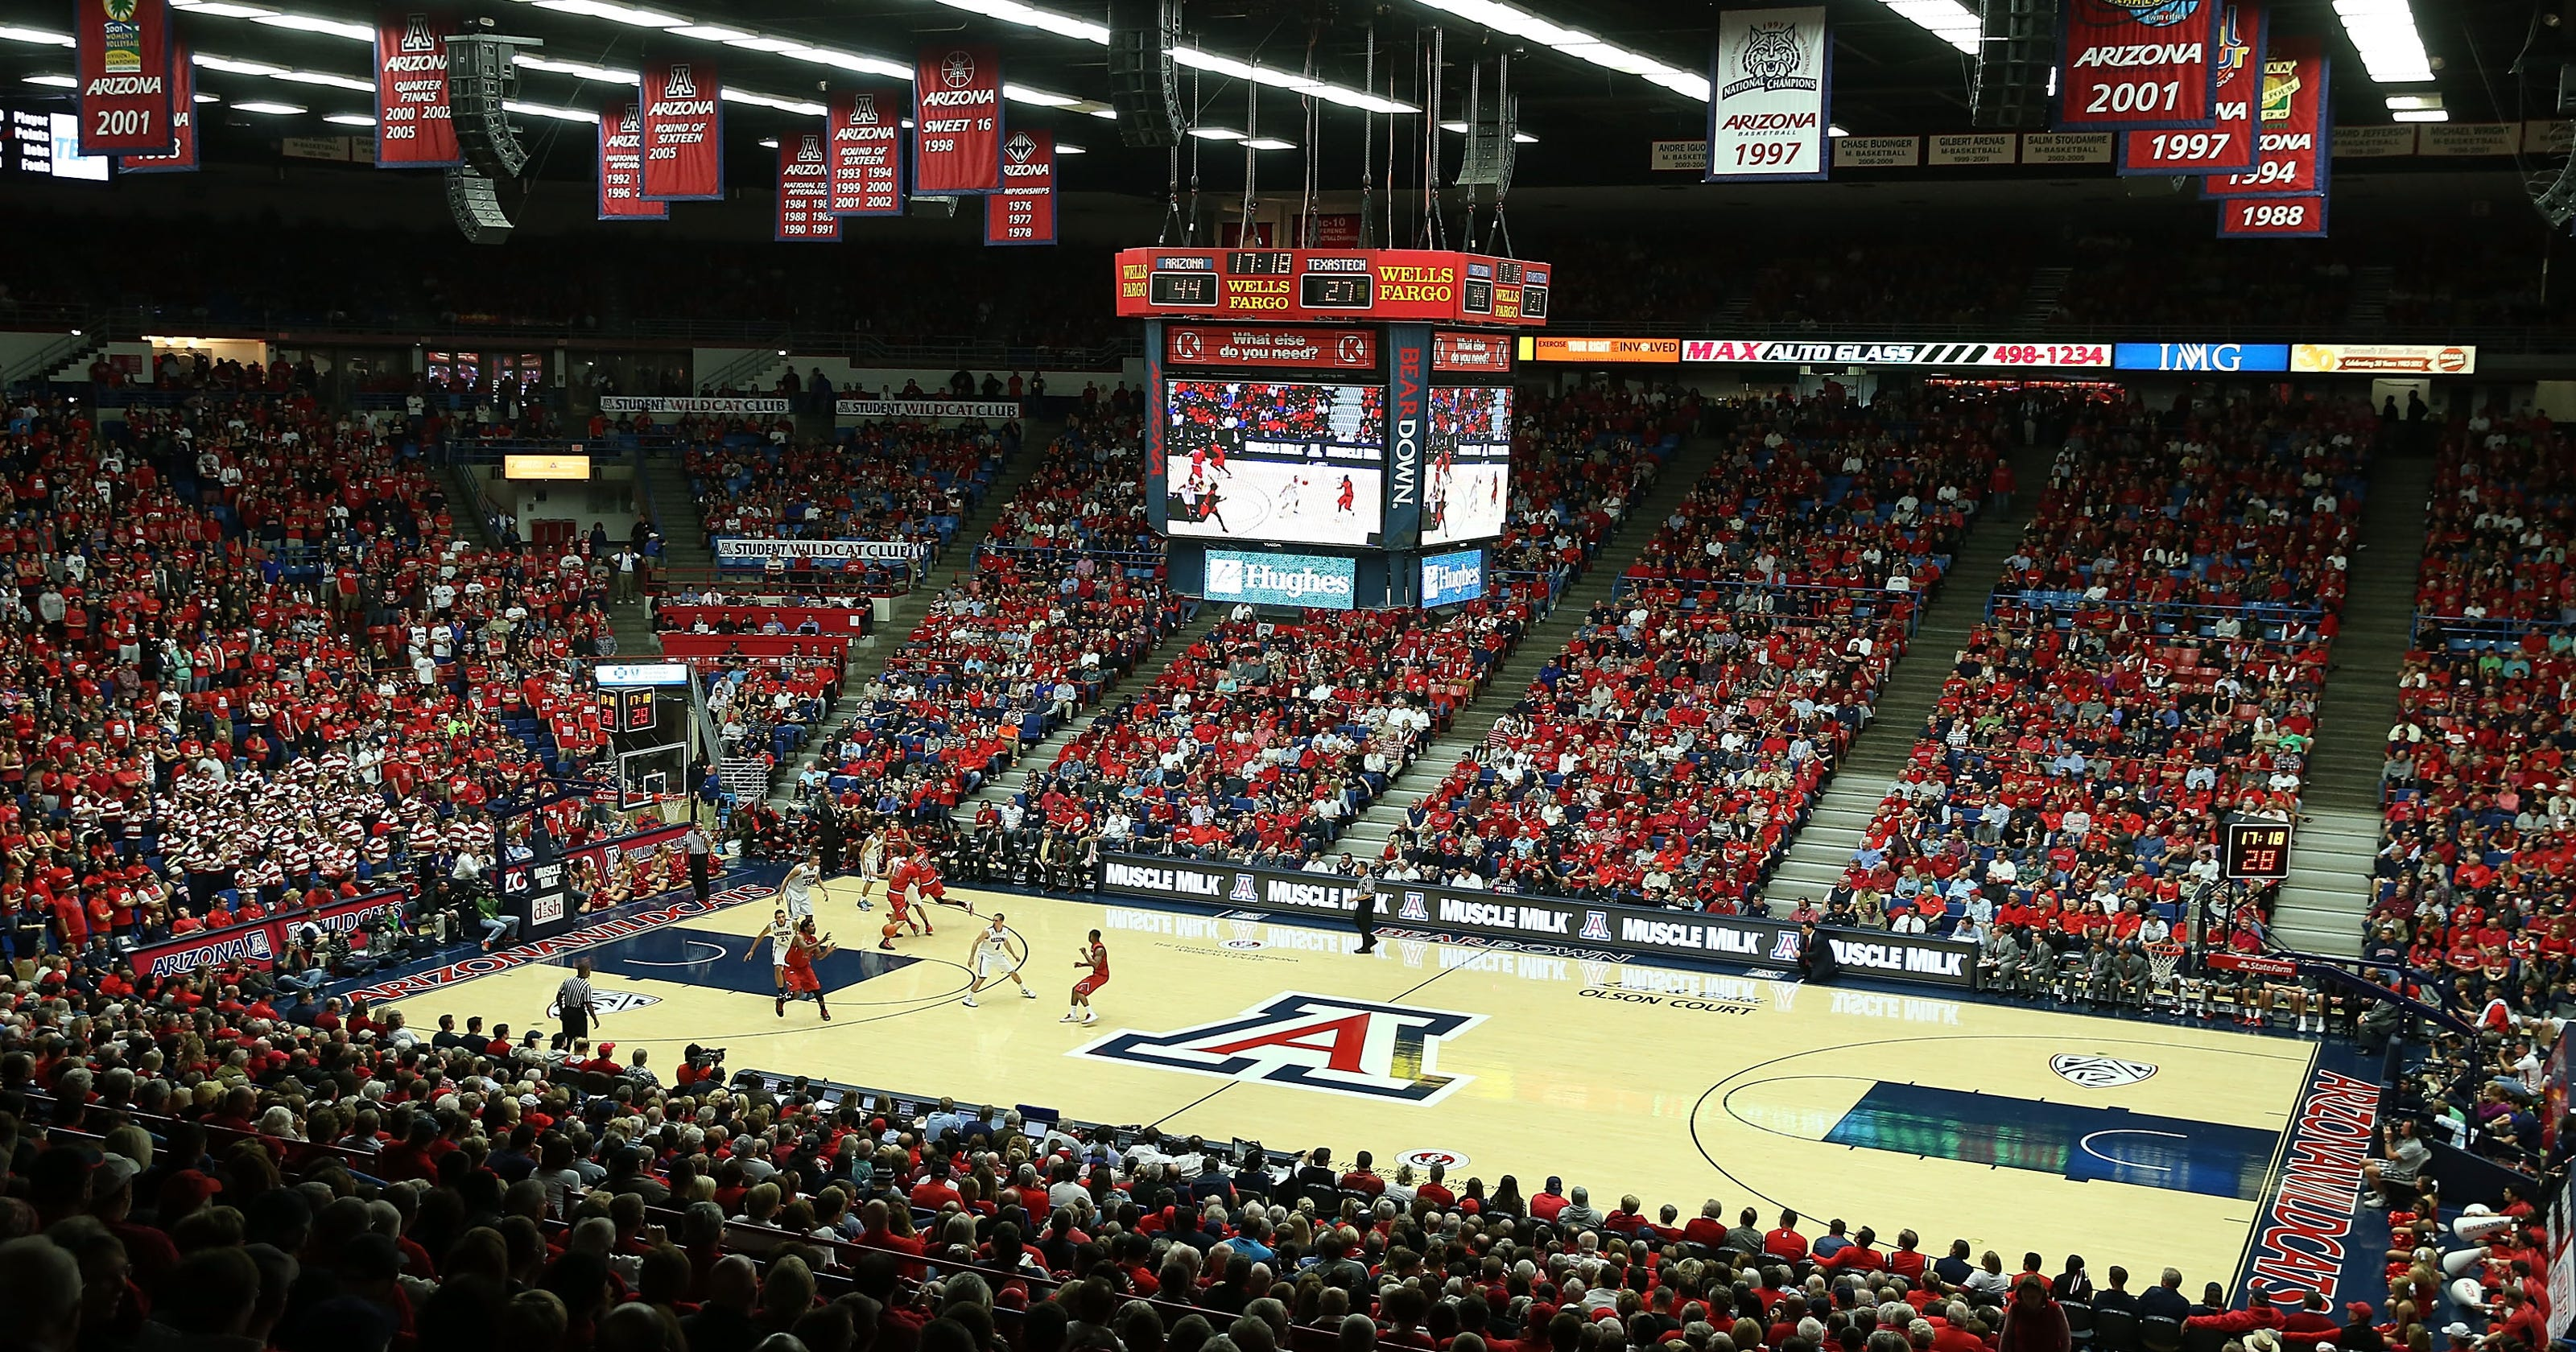 Arizona Wildcats May Sell Beer Wine Might At Mckale Center